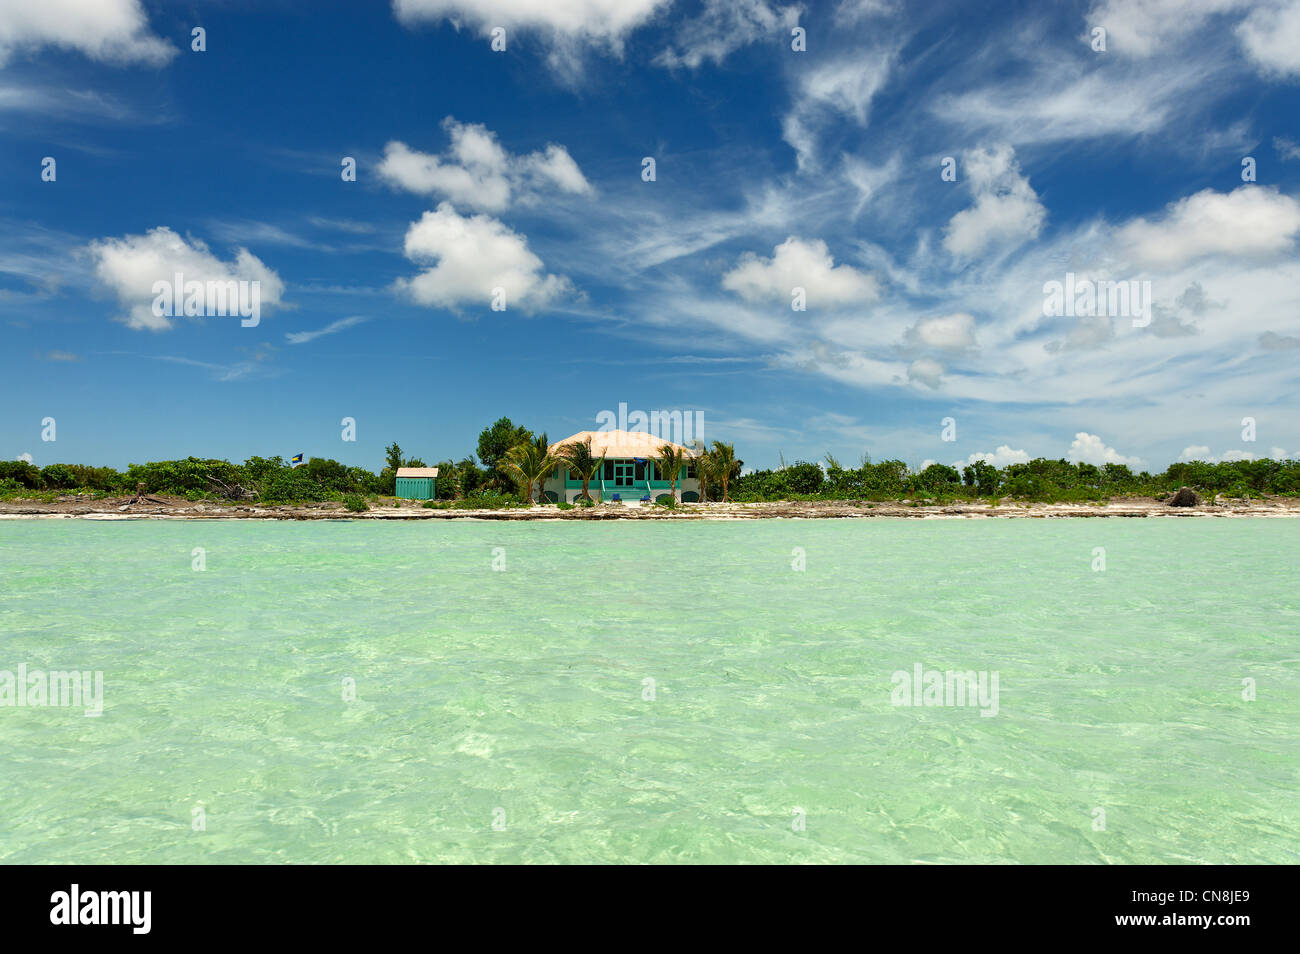 Bahamas, Grand Bahama Island, MacLean Town, Creole house on an island surrounded by clear waters - Stock Image